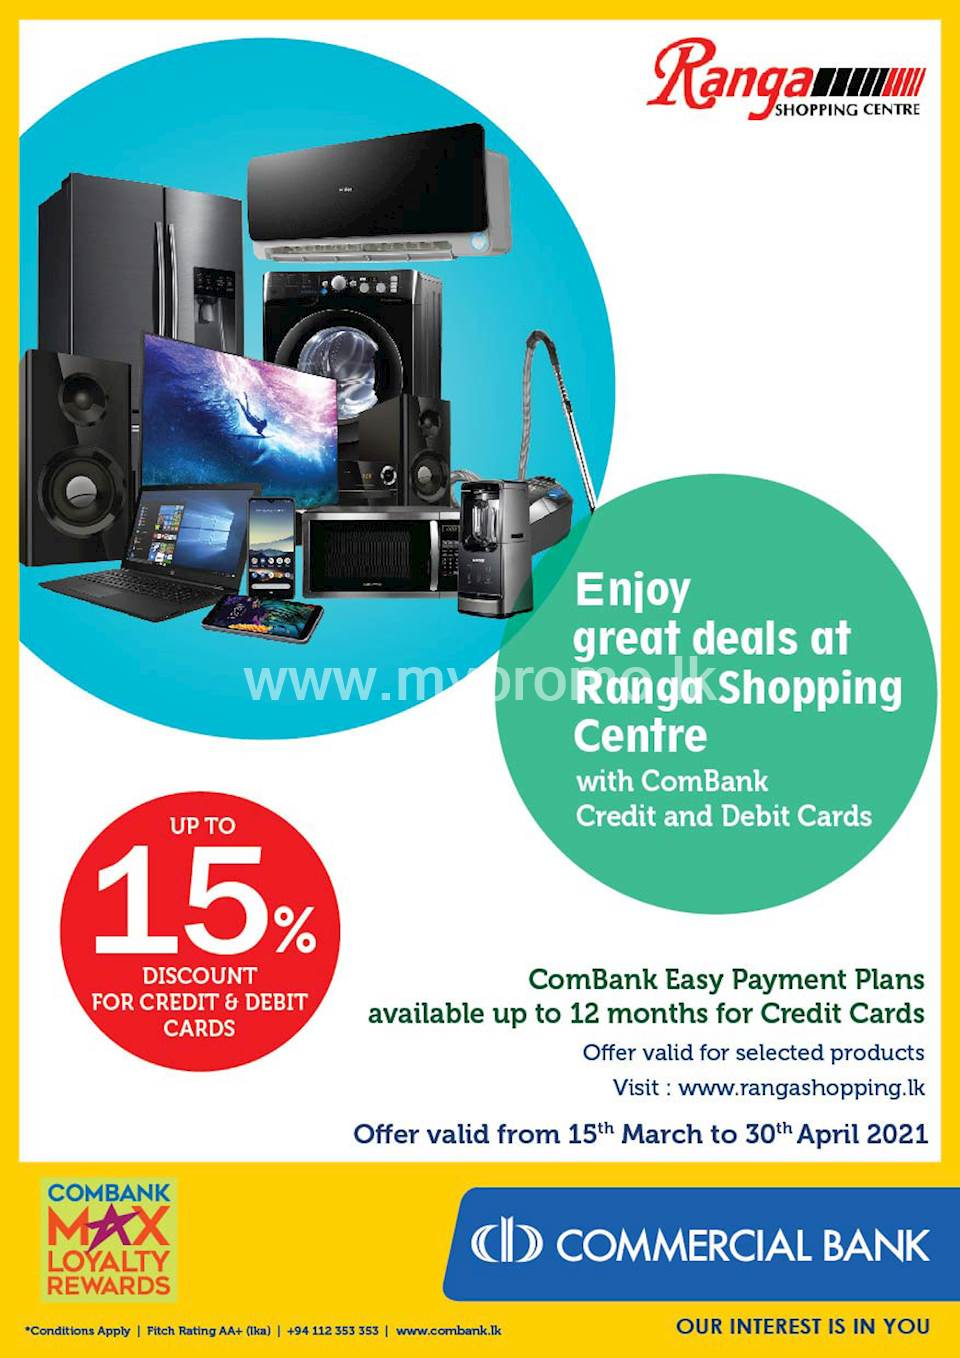 Enjoy great deals at Ranga Shopping Centre with ComBank Credit and Debit Cards